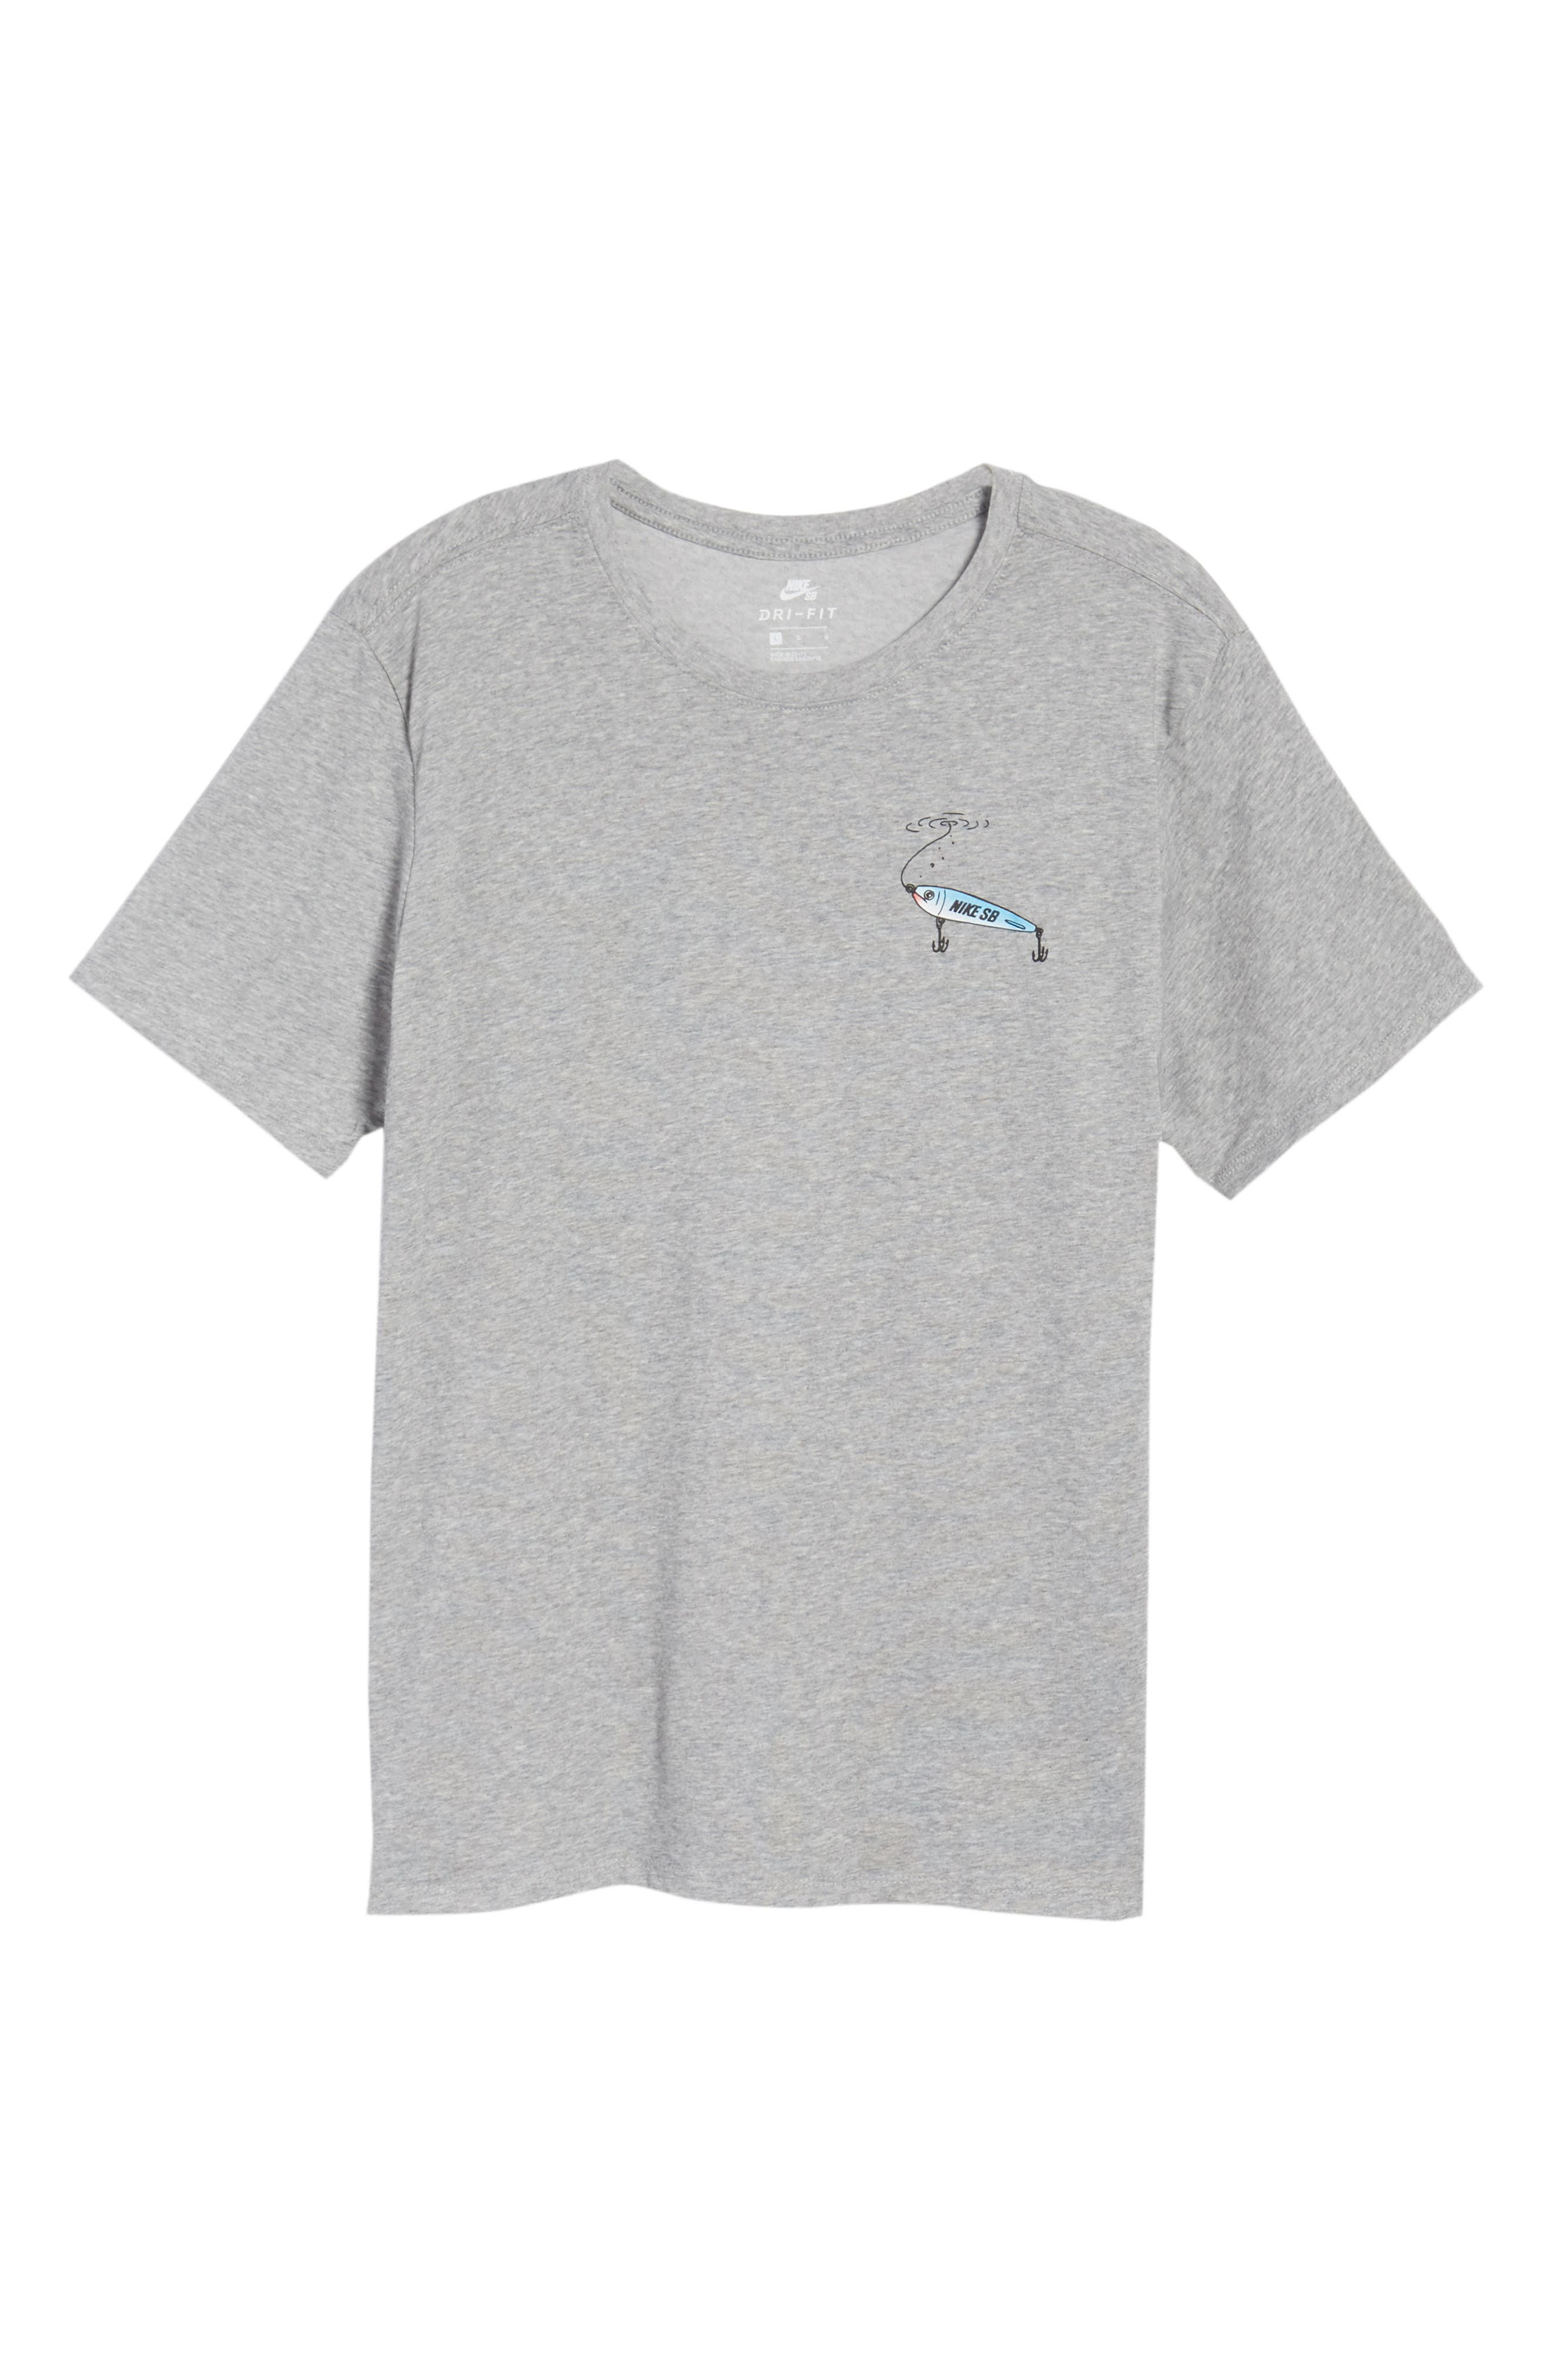 Dry Walrus T-Shirt,                             Alternate thumbnail 6, color,                             063